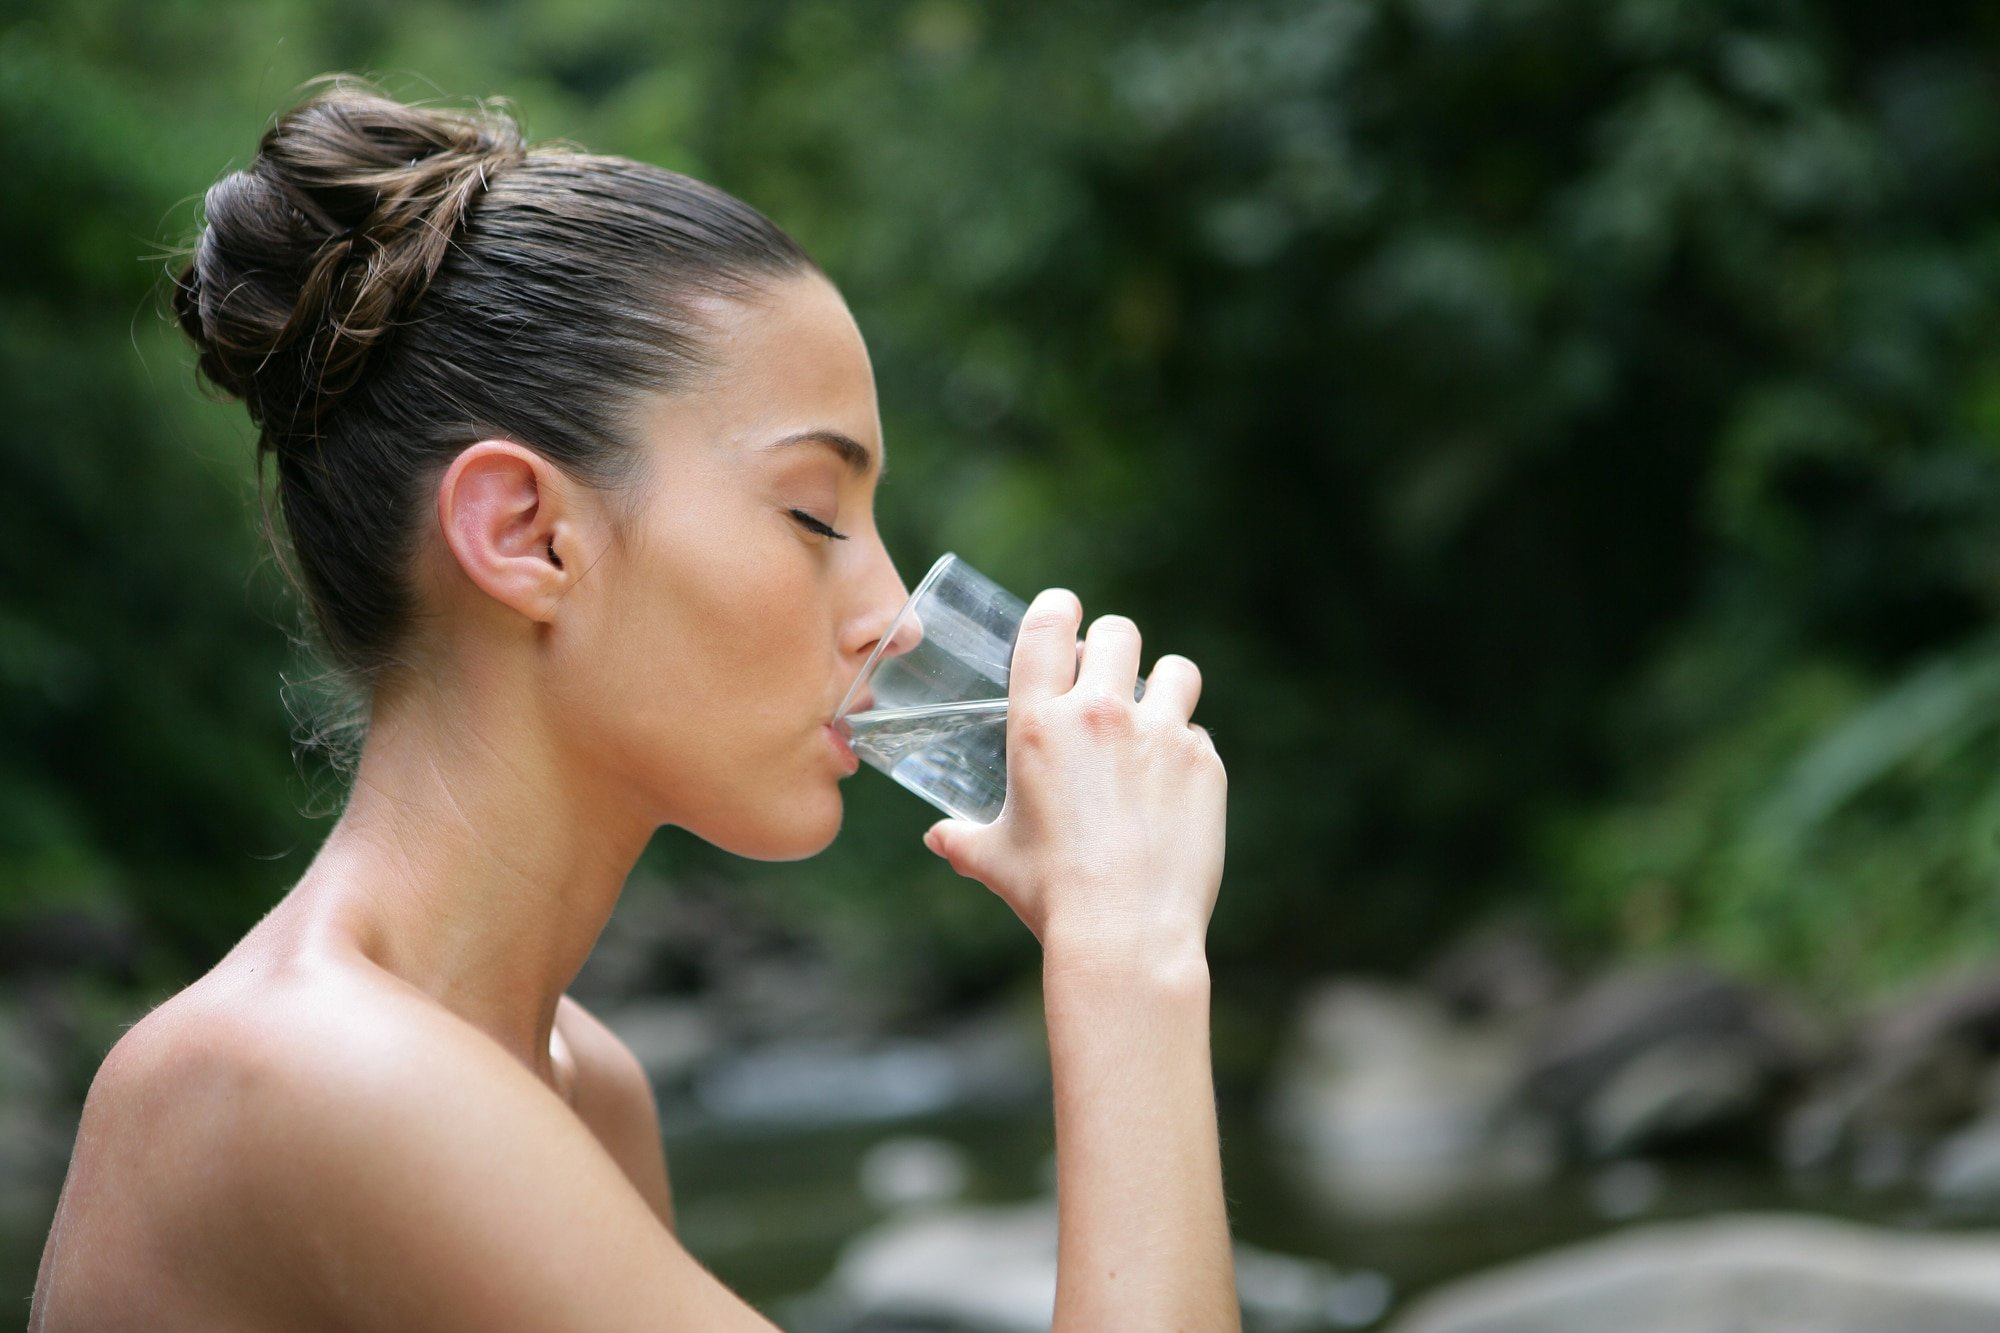 Drinking right : 7 tips for everyday life + 8 common mistakes